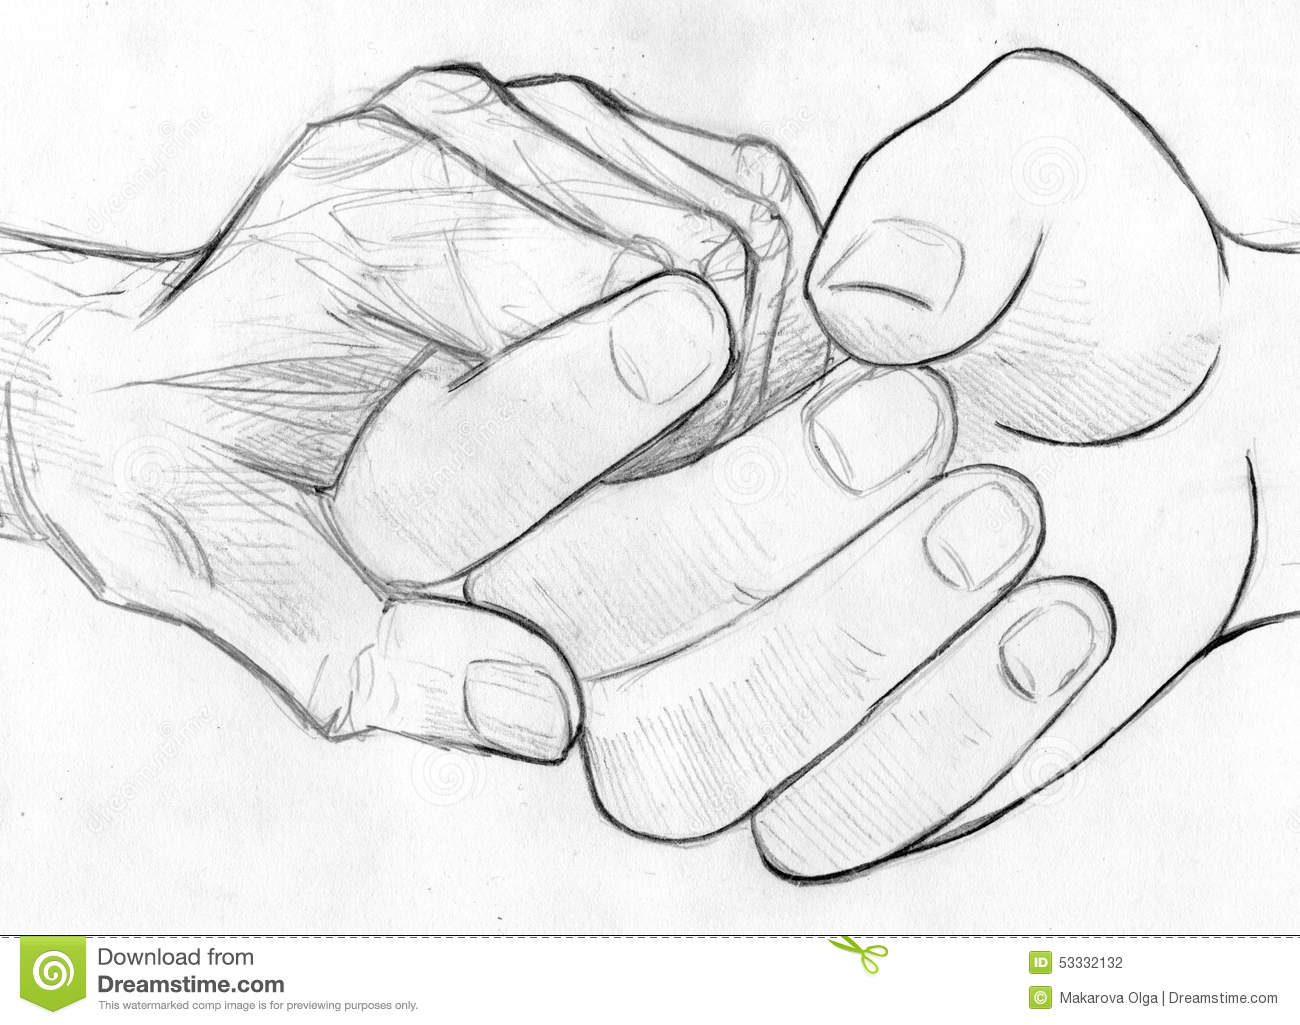 Hand drawn pencil sketch of two hands one young and one old holding symbol of help compassion and love